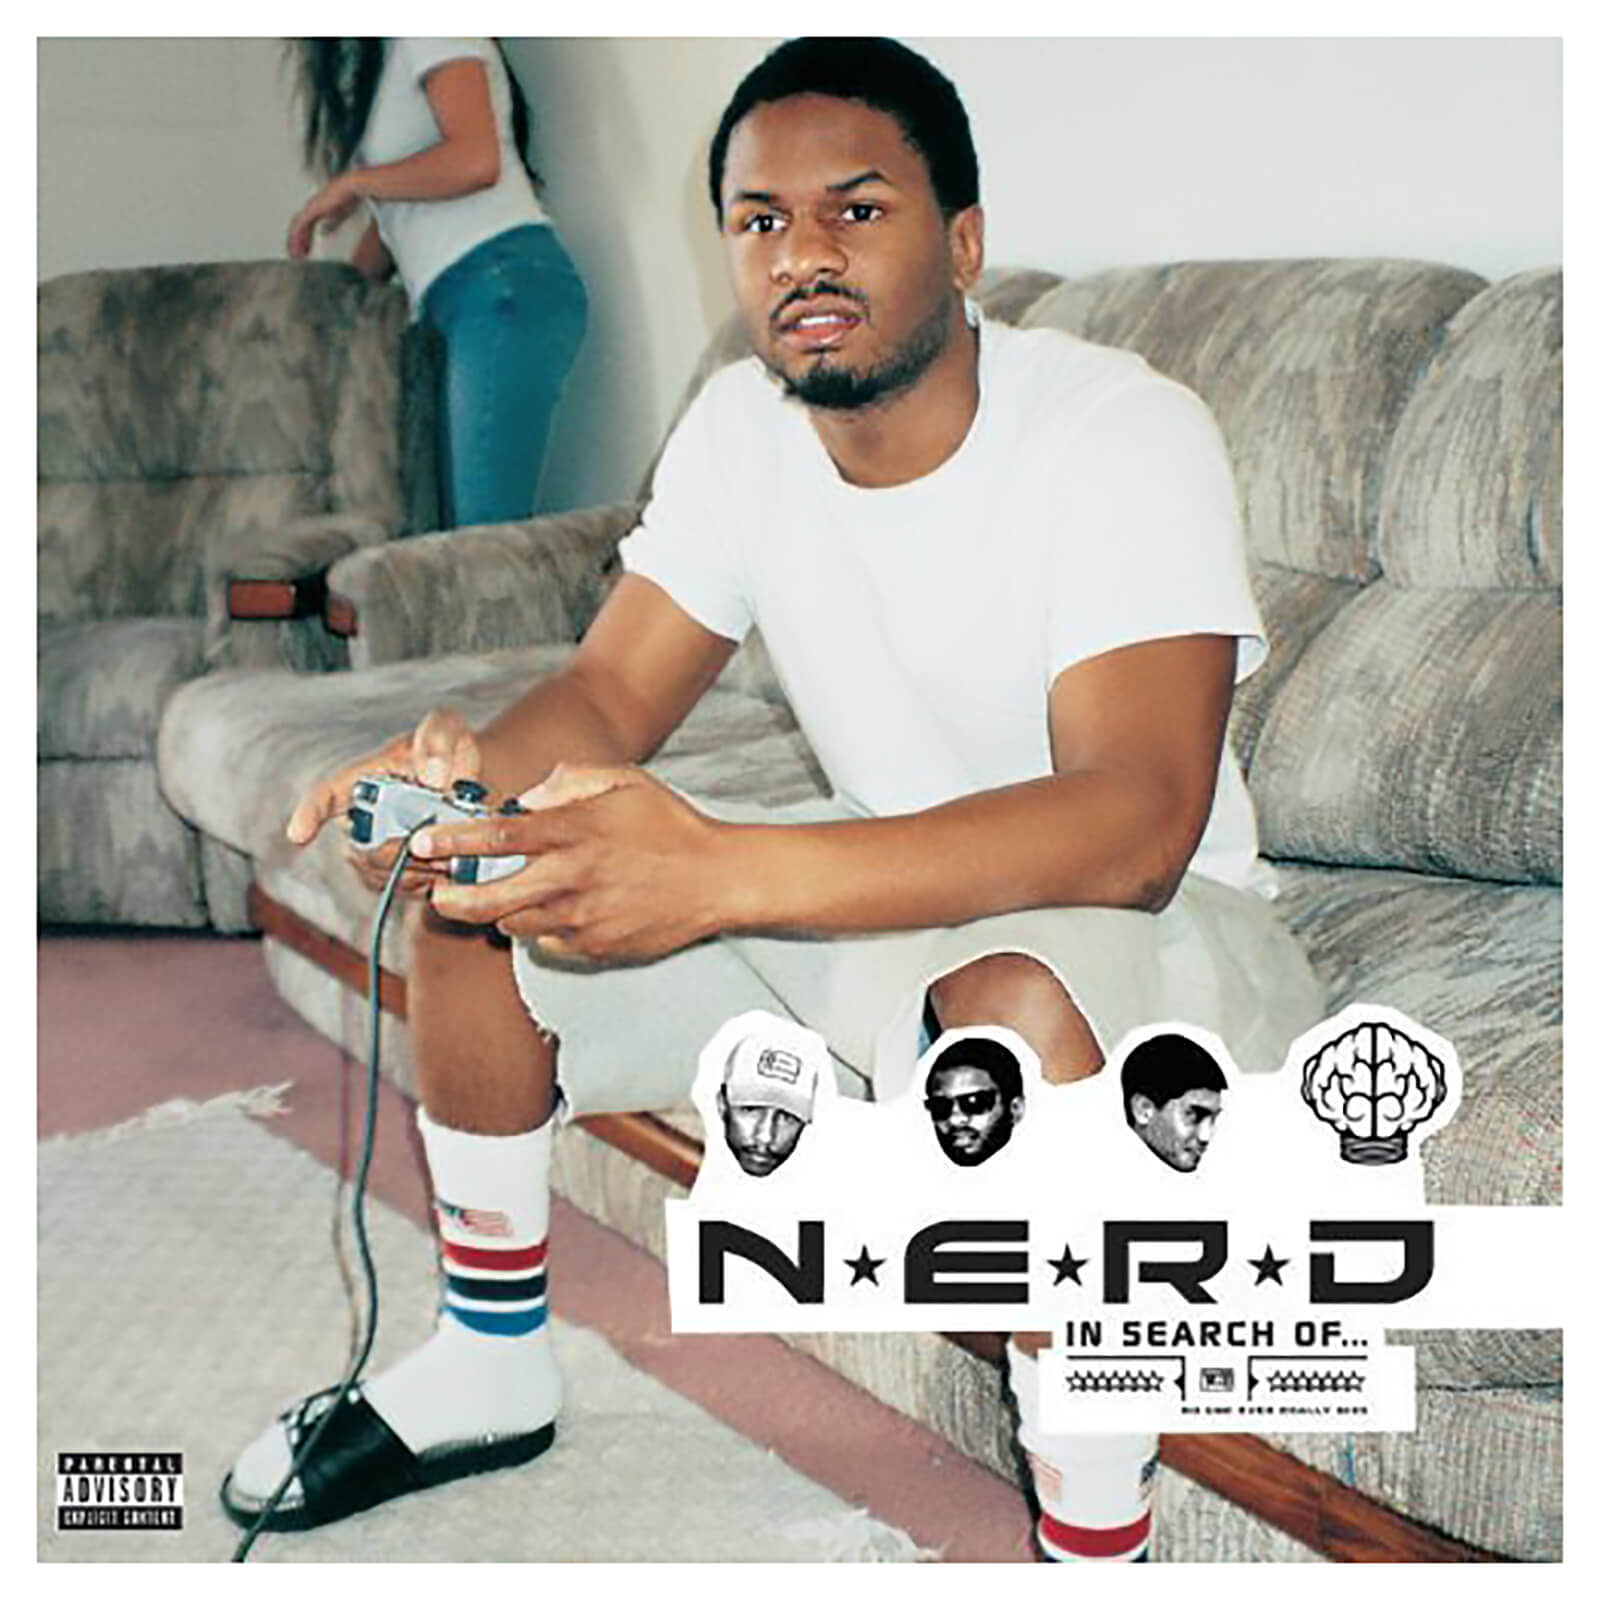 N.E.R.D. - In Search Of - Vinyl